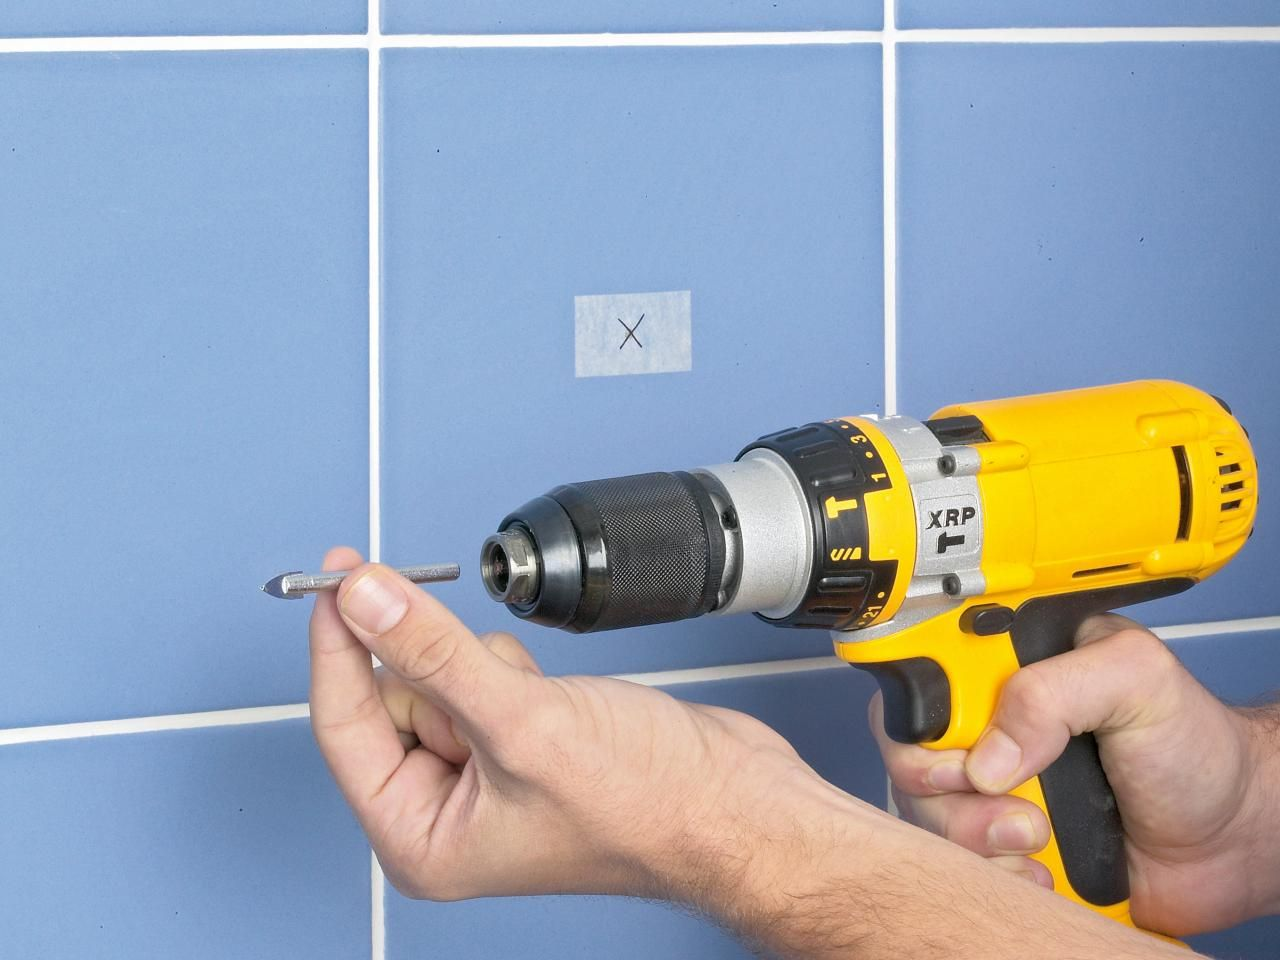 Park Art|My WordPress Blog_How To Drill Through Tiles Without Cracking Them